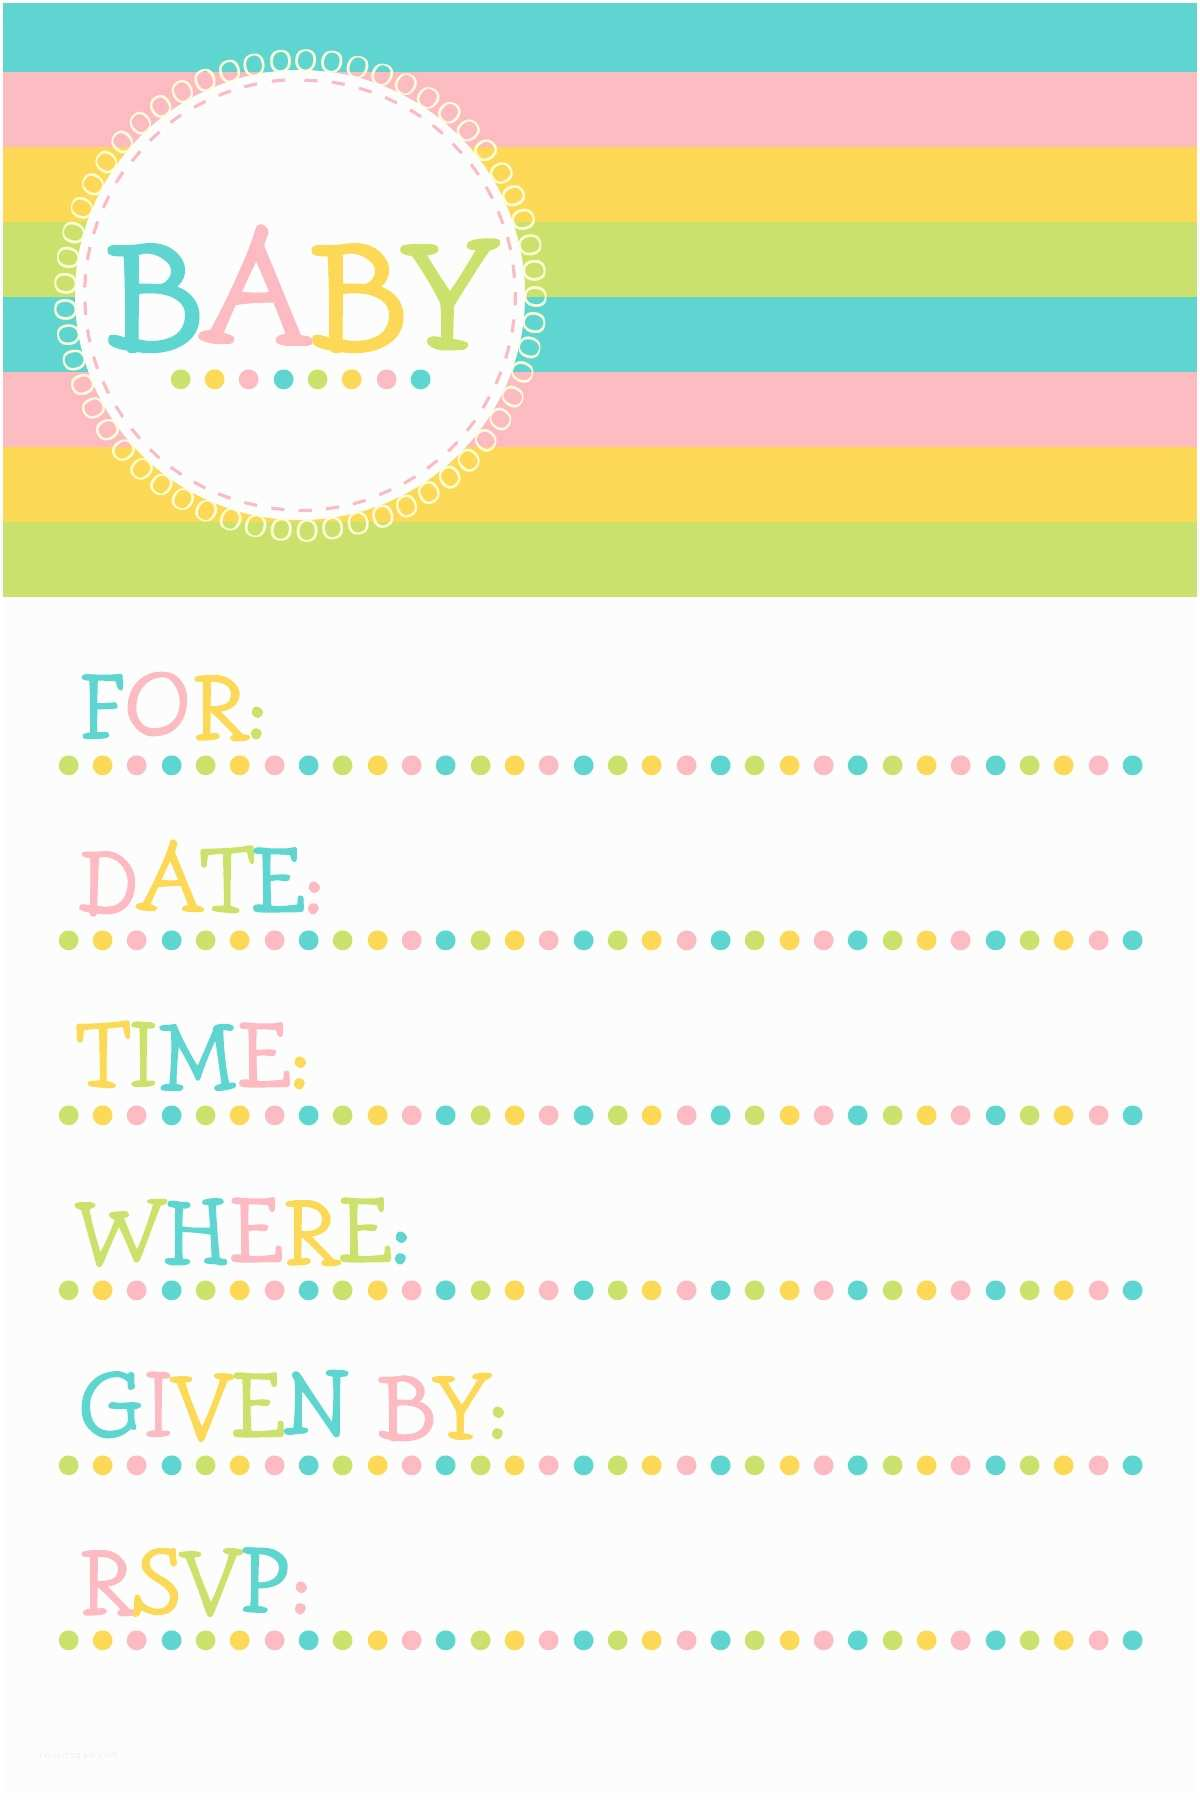 Free Downloadable Baby Shower Invitations Free Baby Shower Invitation Template